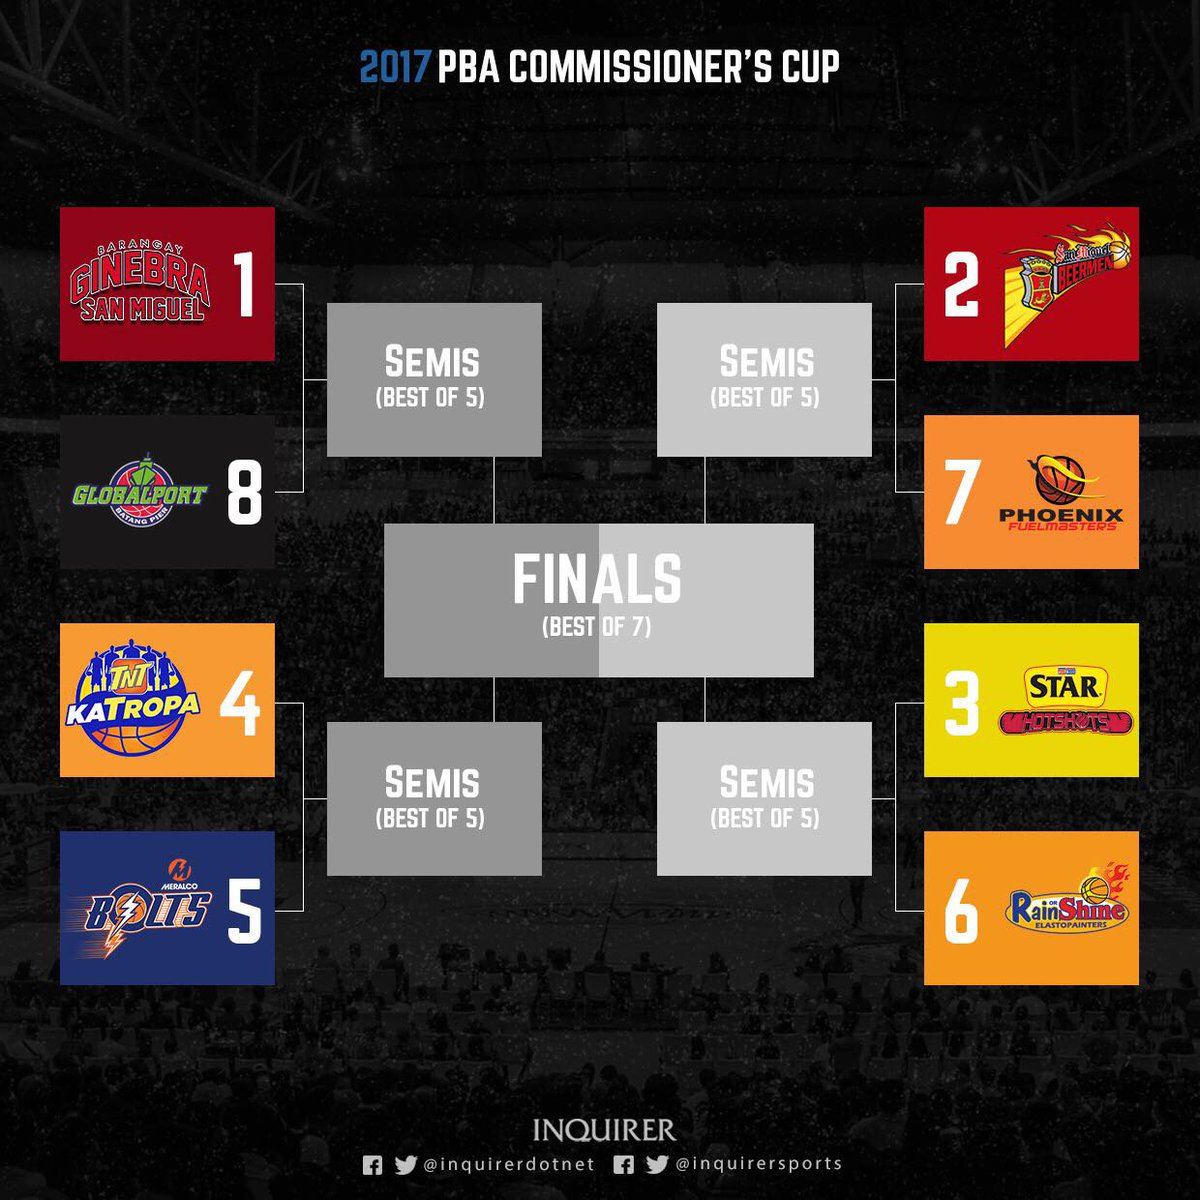 Look: 2017 Pba Commissioner's Cup Playoff Bracket